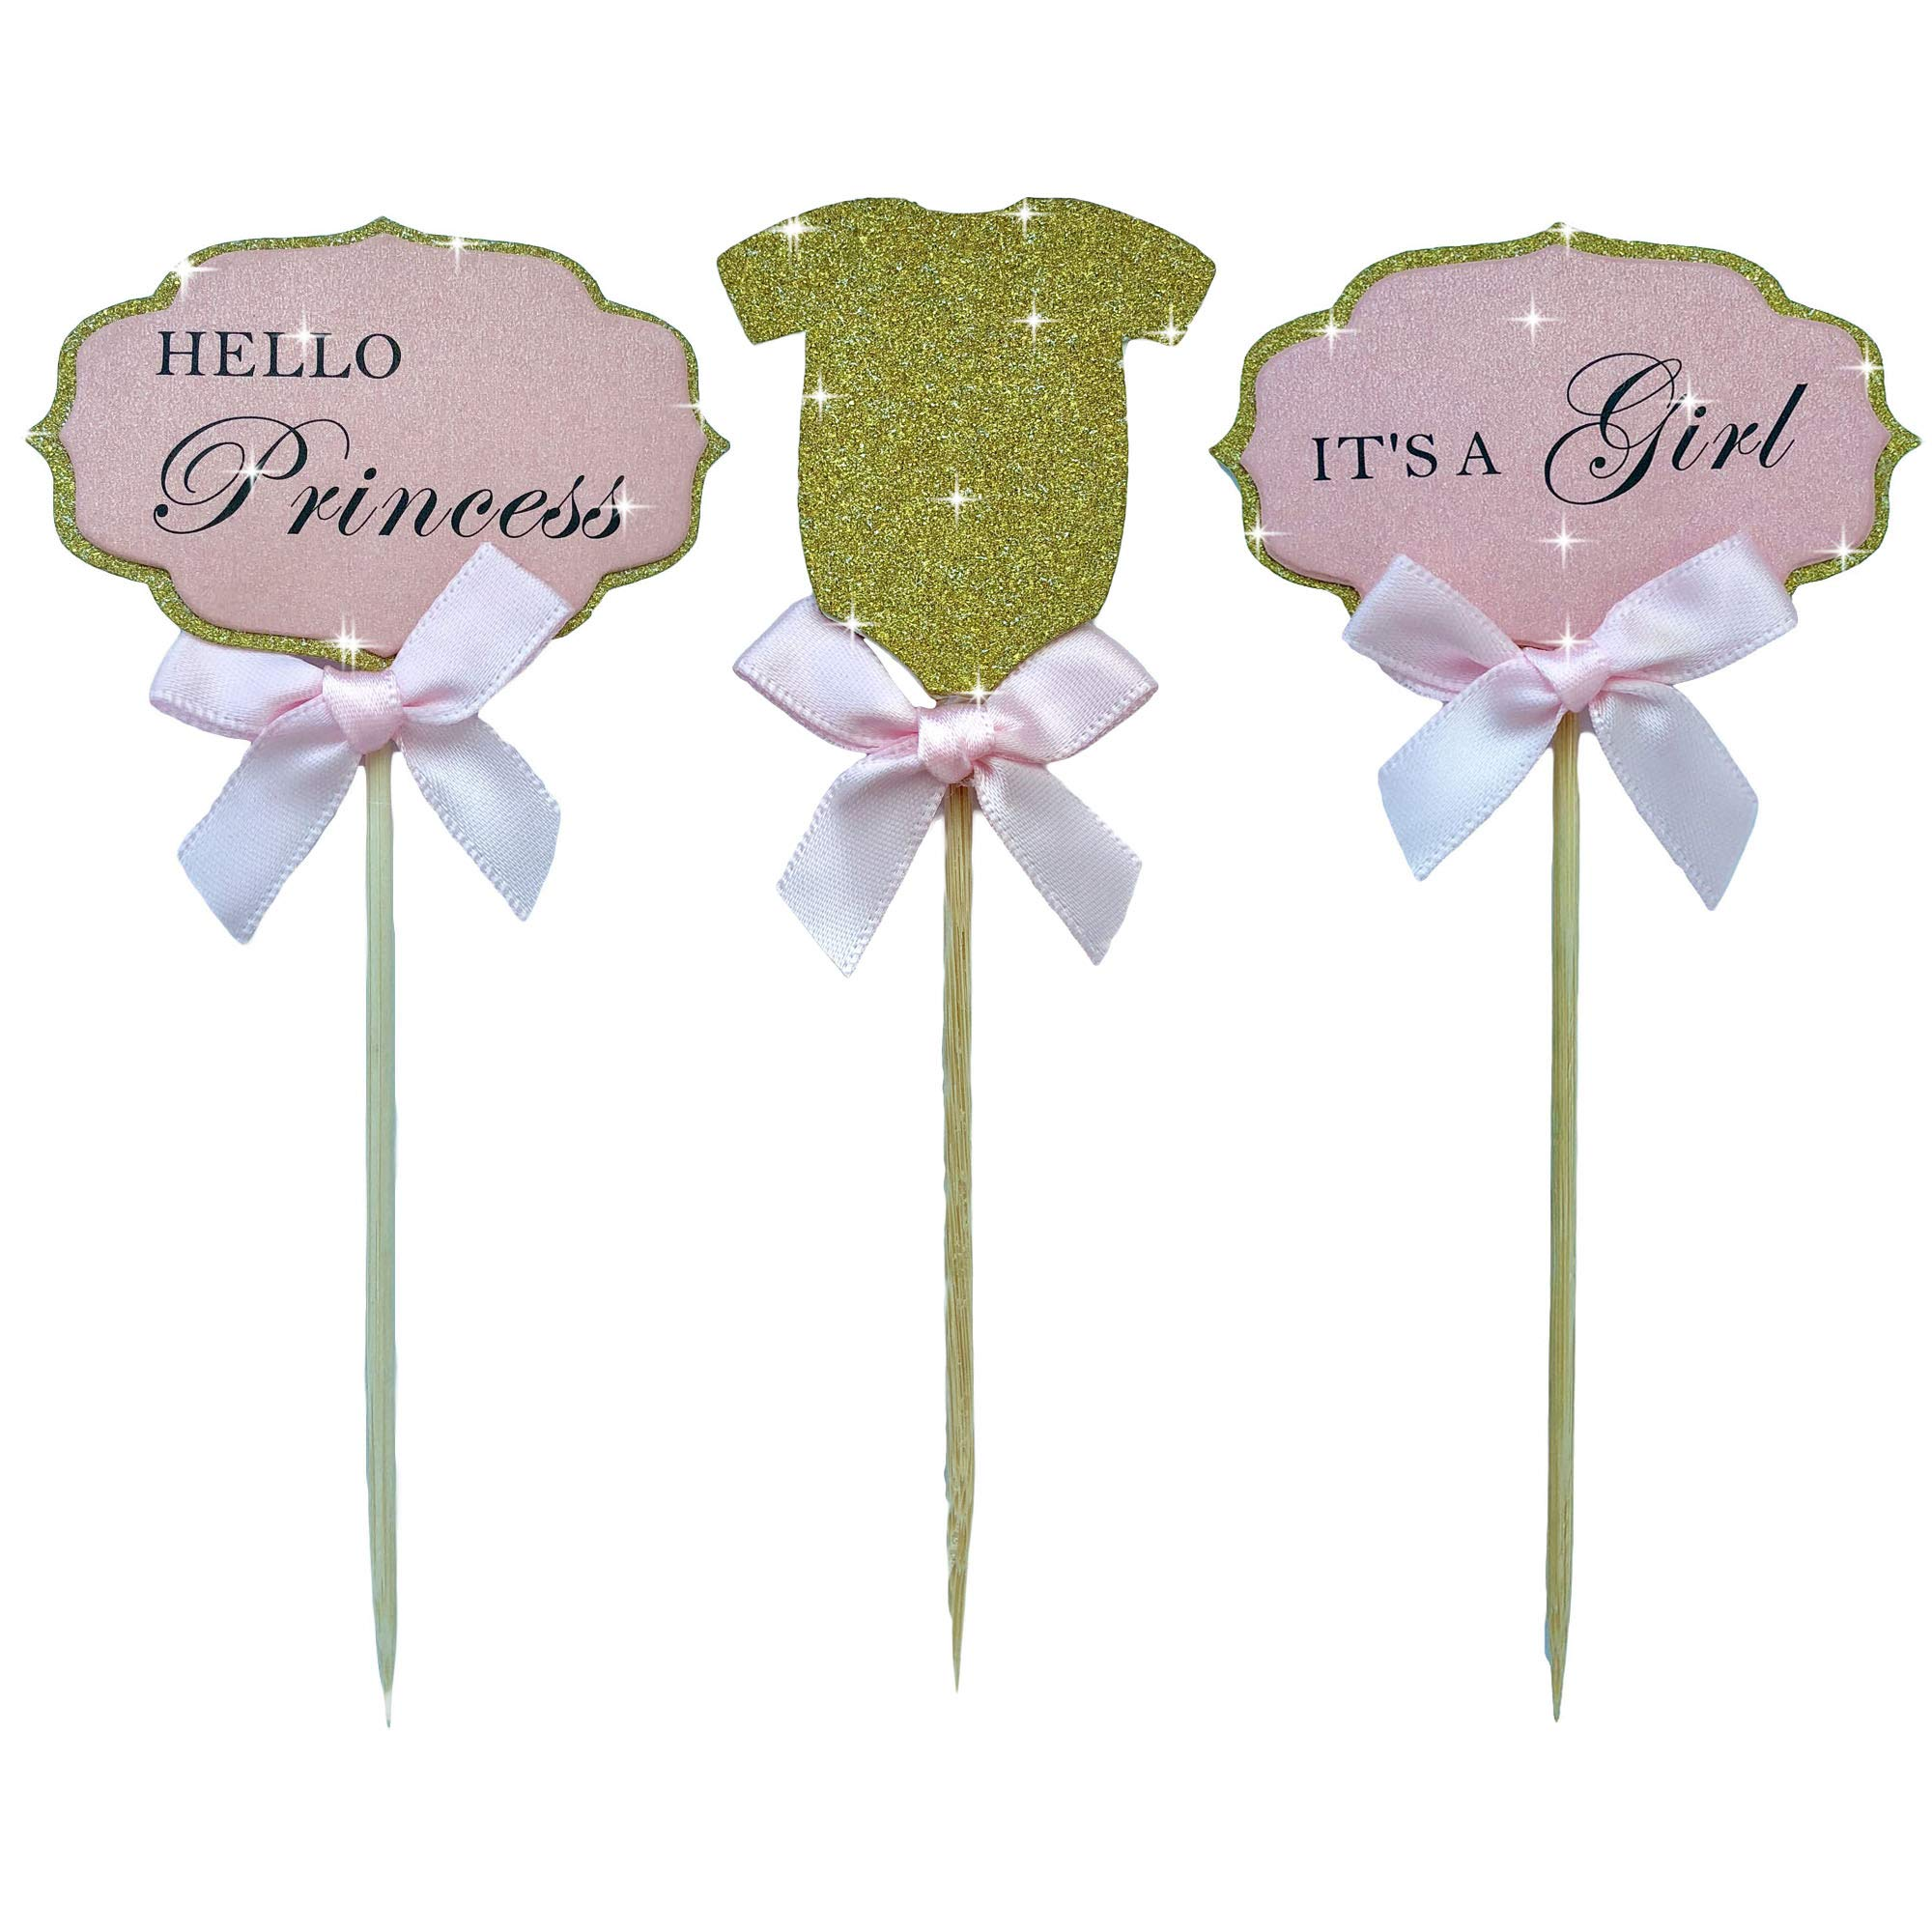 Mother&Fabulous Baby Girl Cupcake Toppers Its A Girl &Hello Princess & Gold Glitter Suit With Elegant Pink Bow. A Special Baby Girl Shower Decoration - 18 Count.